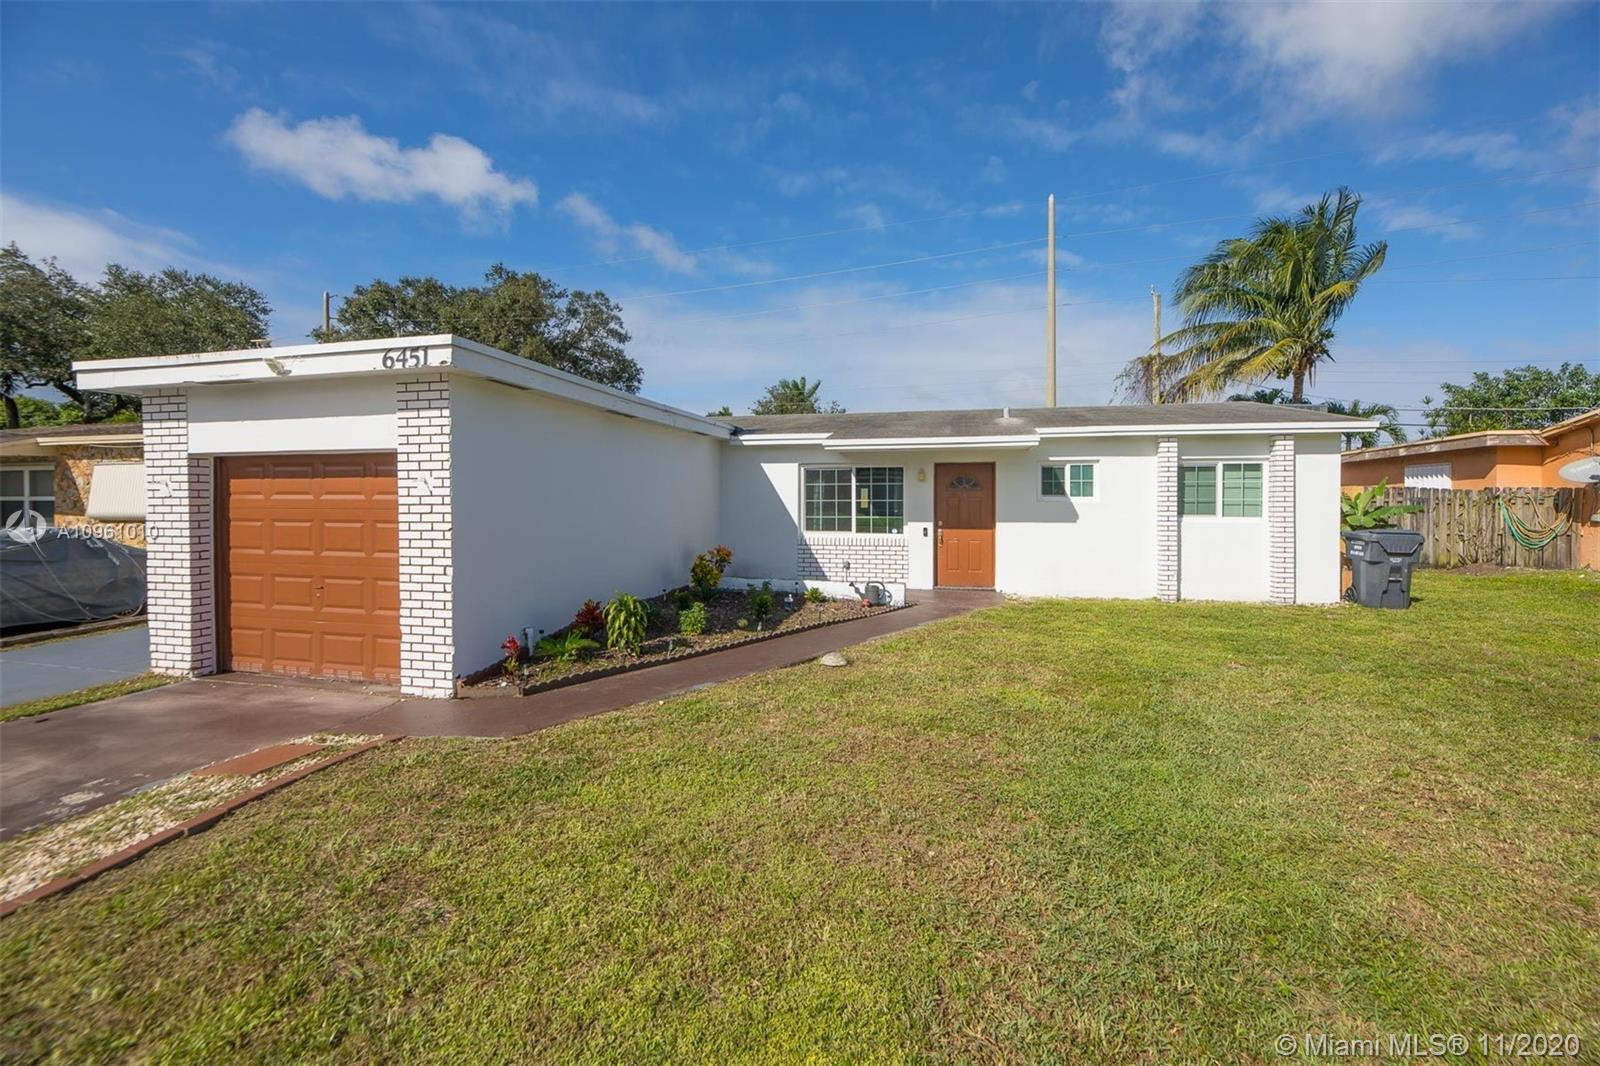 BEAUTIFUL REMODELED 4 BEDROOM 2 BATH WITH BONUS ROOM. BRAND NEW OPEN PATIO SHED AND FENCED YARD. INT